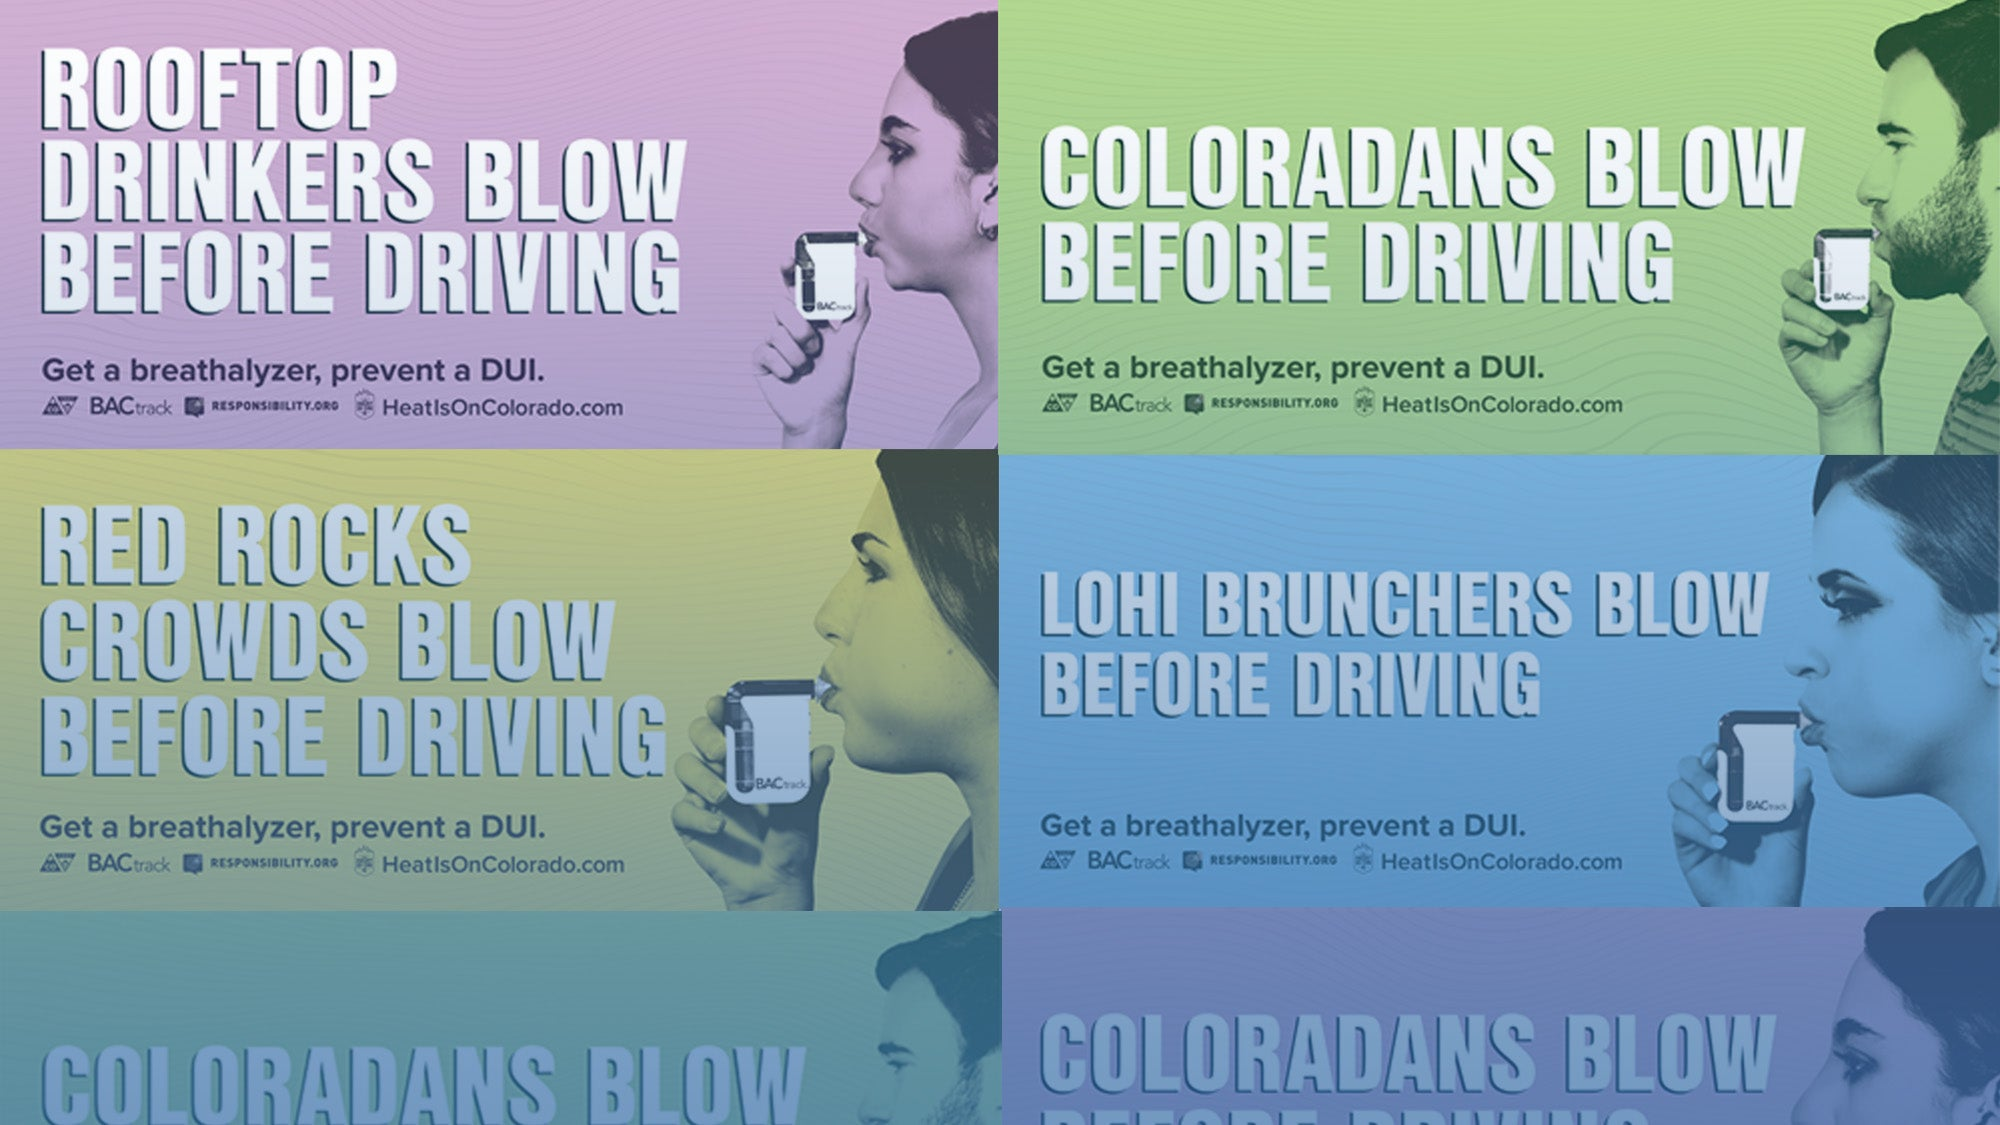 BACtrack® and Colorado Department of Transportation (CDOT) Launch 2018 Program Aimed at Reducing Drunk Driving